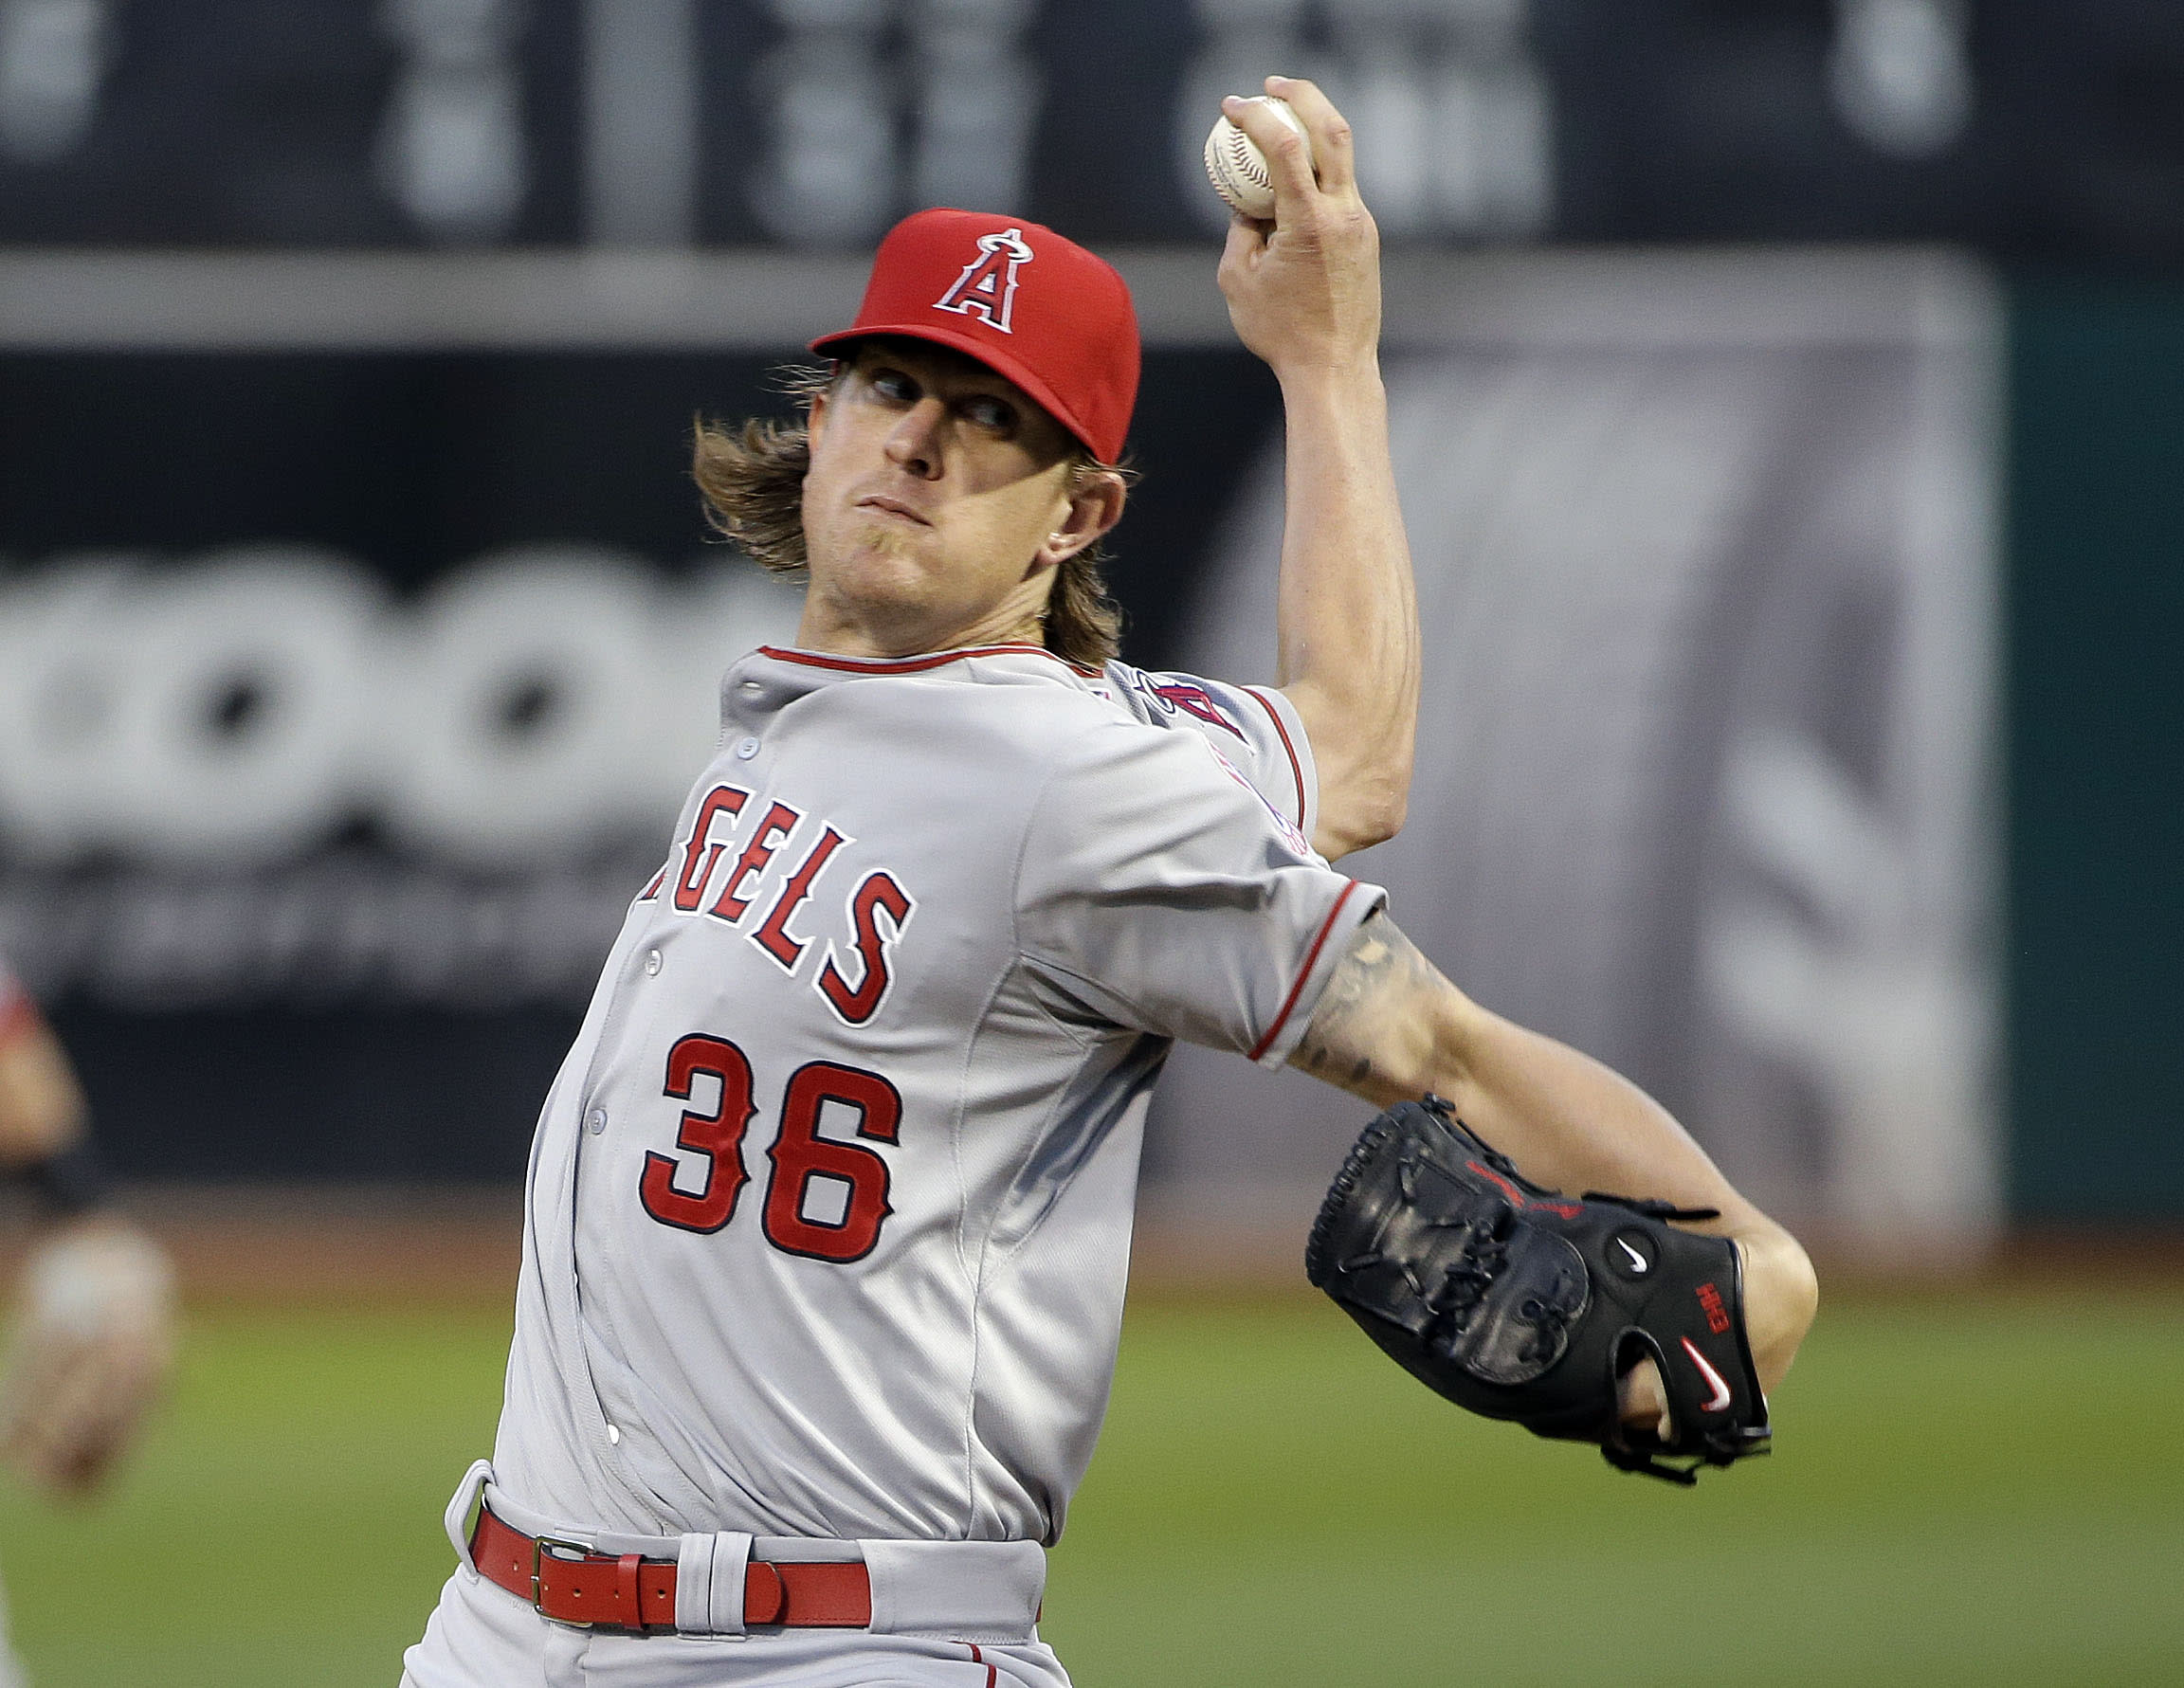 LEADING OFF: Astros stalk 10th W in row, Weaver goes for 1st